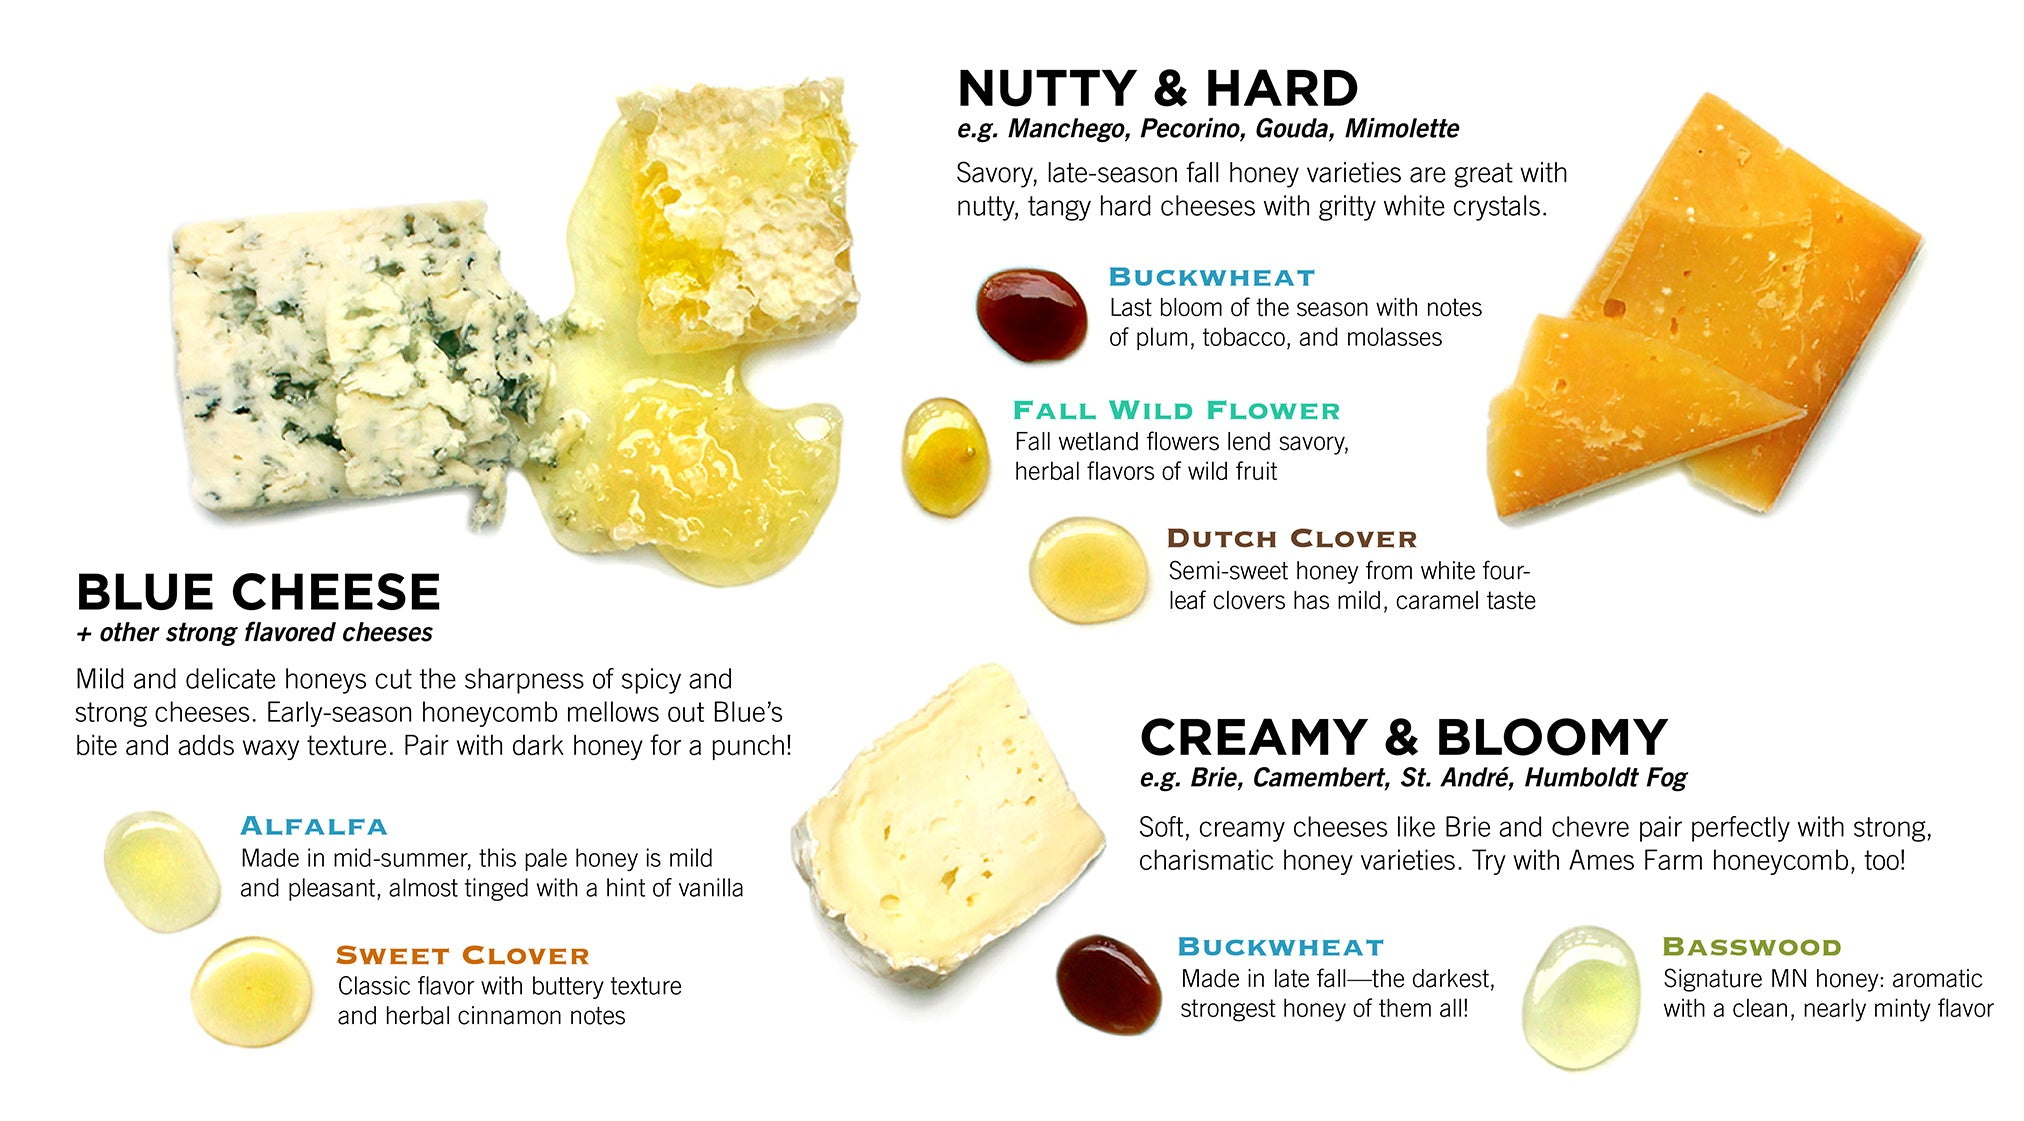 Cheese Pairing Guide with Minnesota Honey from Ames Farm